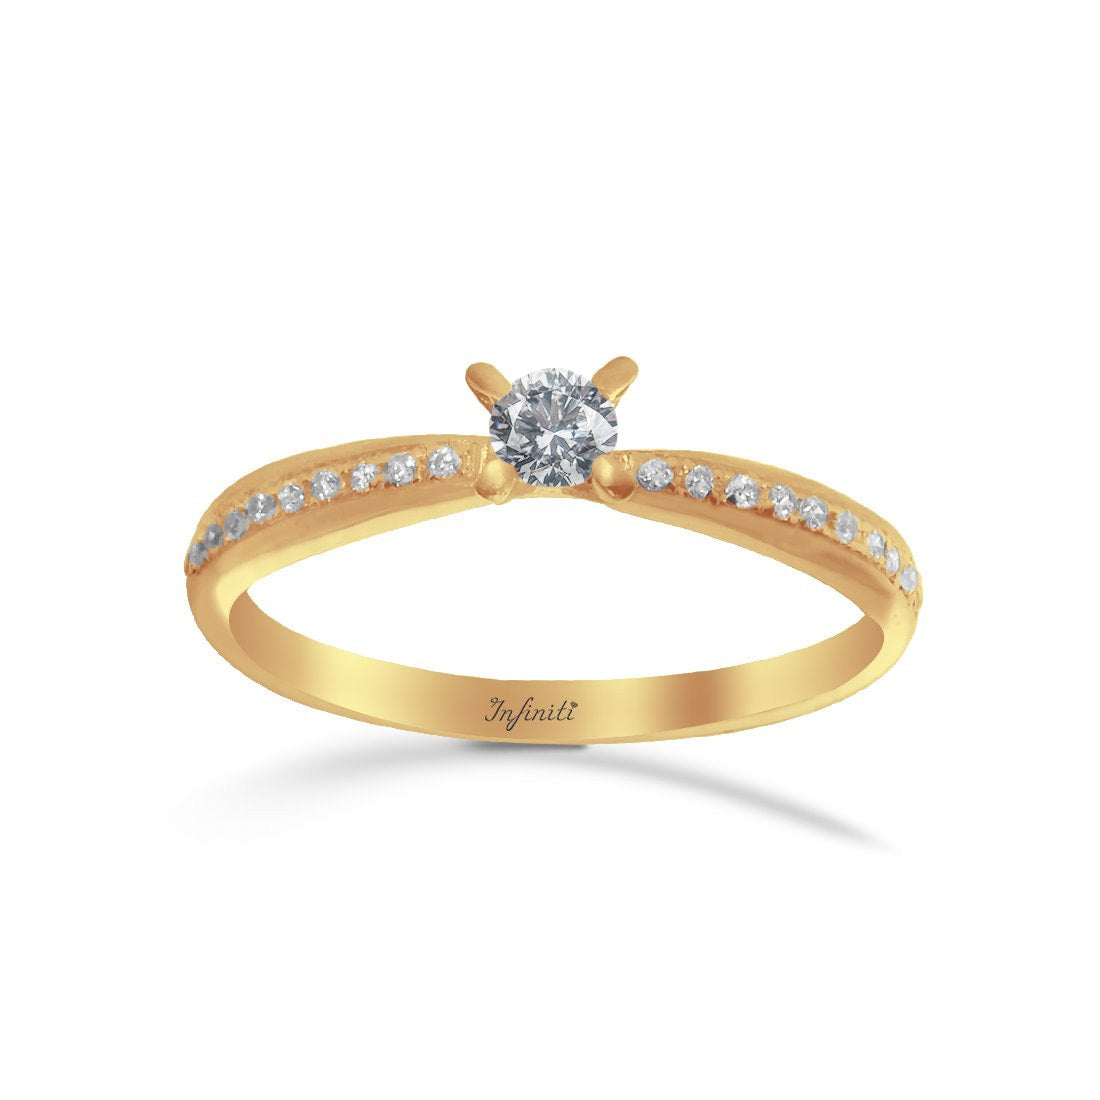 Anillo Oro 10k, Zirconia 3.5 mm estilo Pavé con Laterales de 1 mm